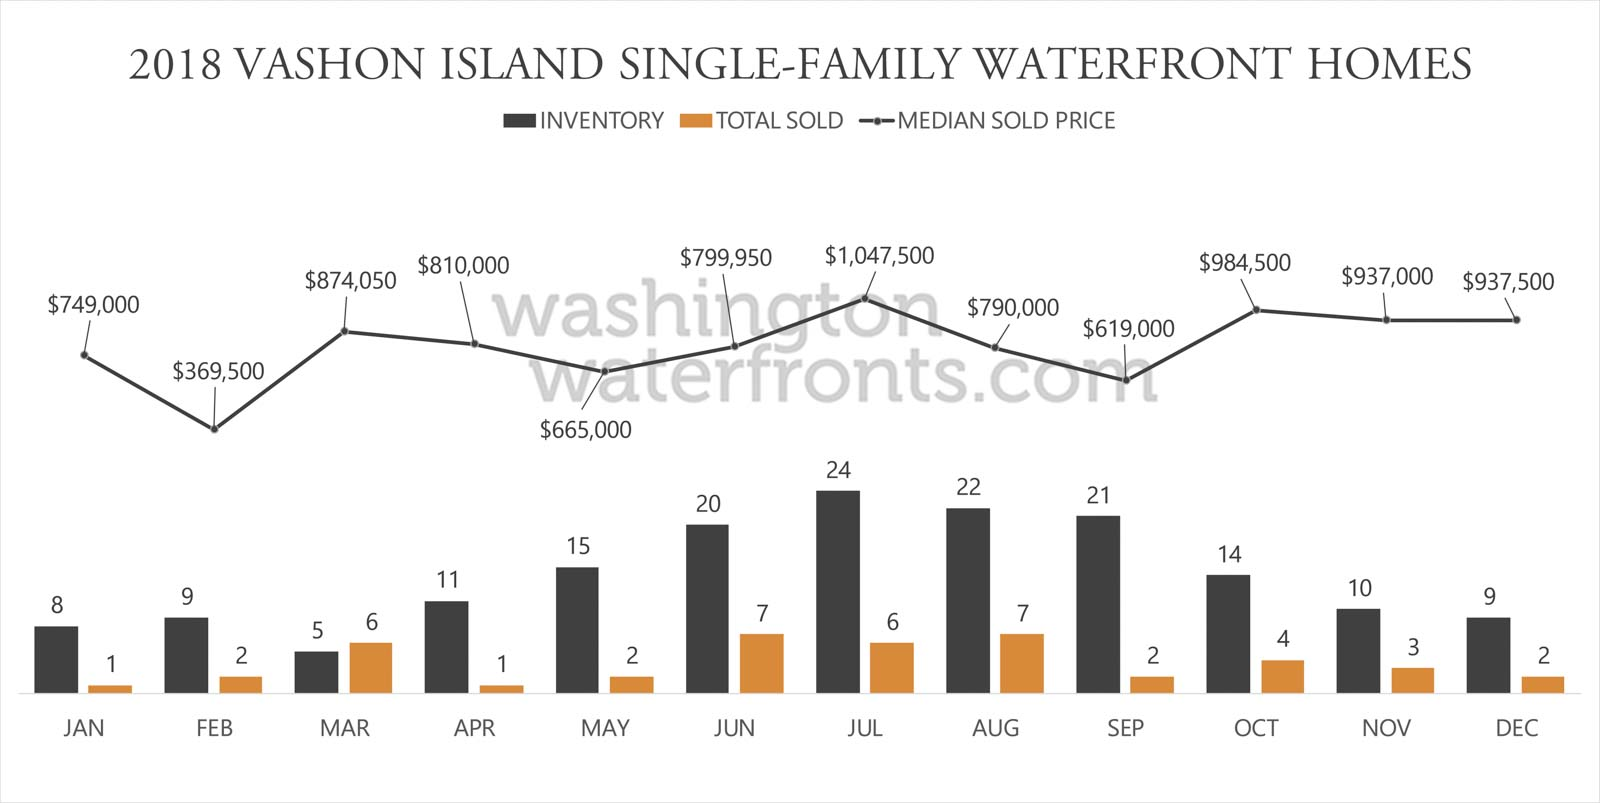 Vashon Island Waterfront Inventory